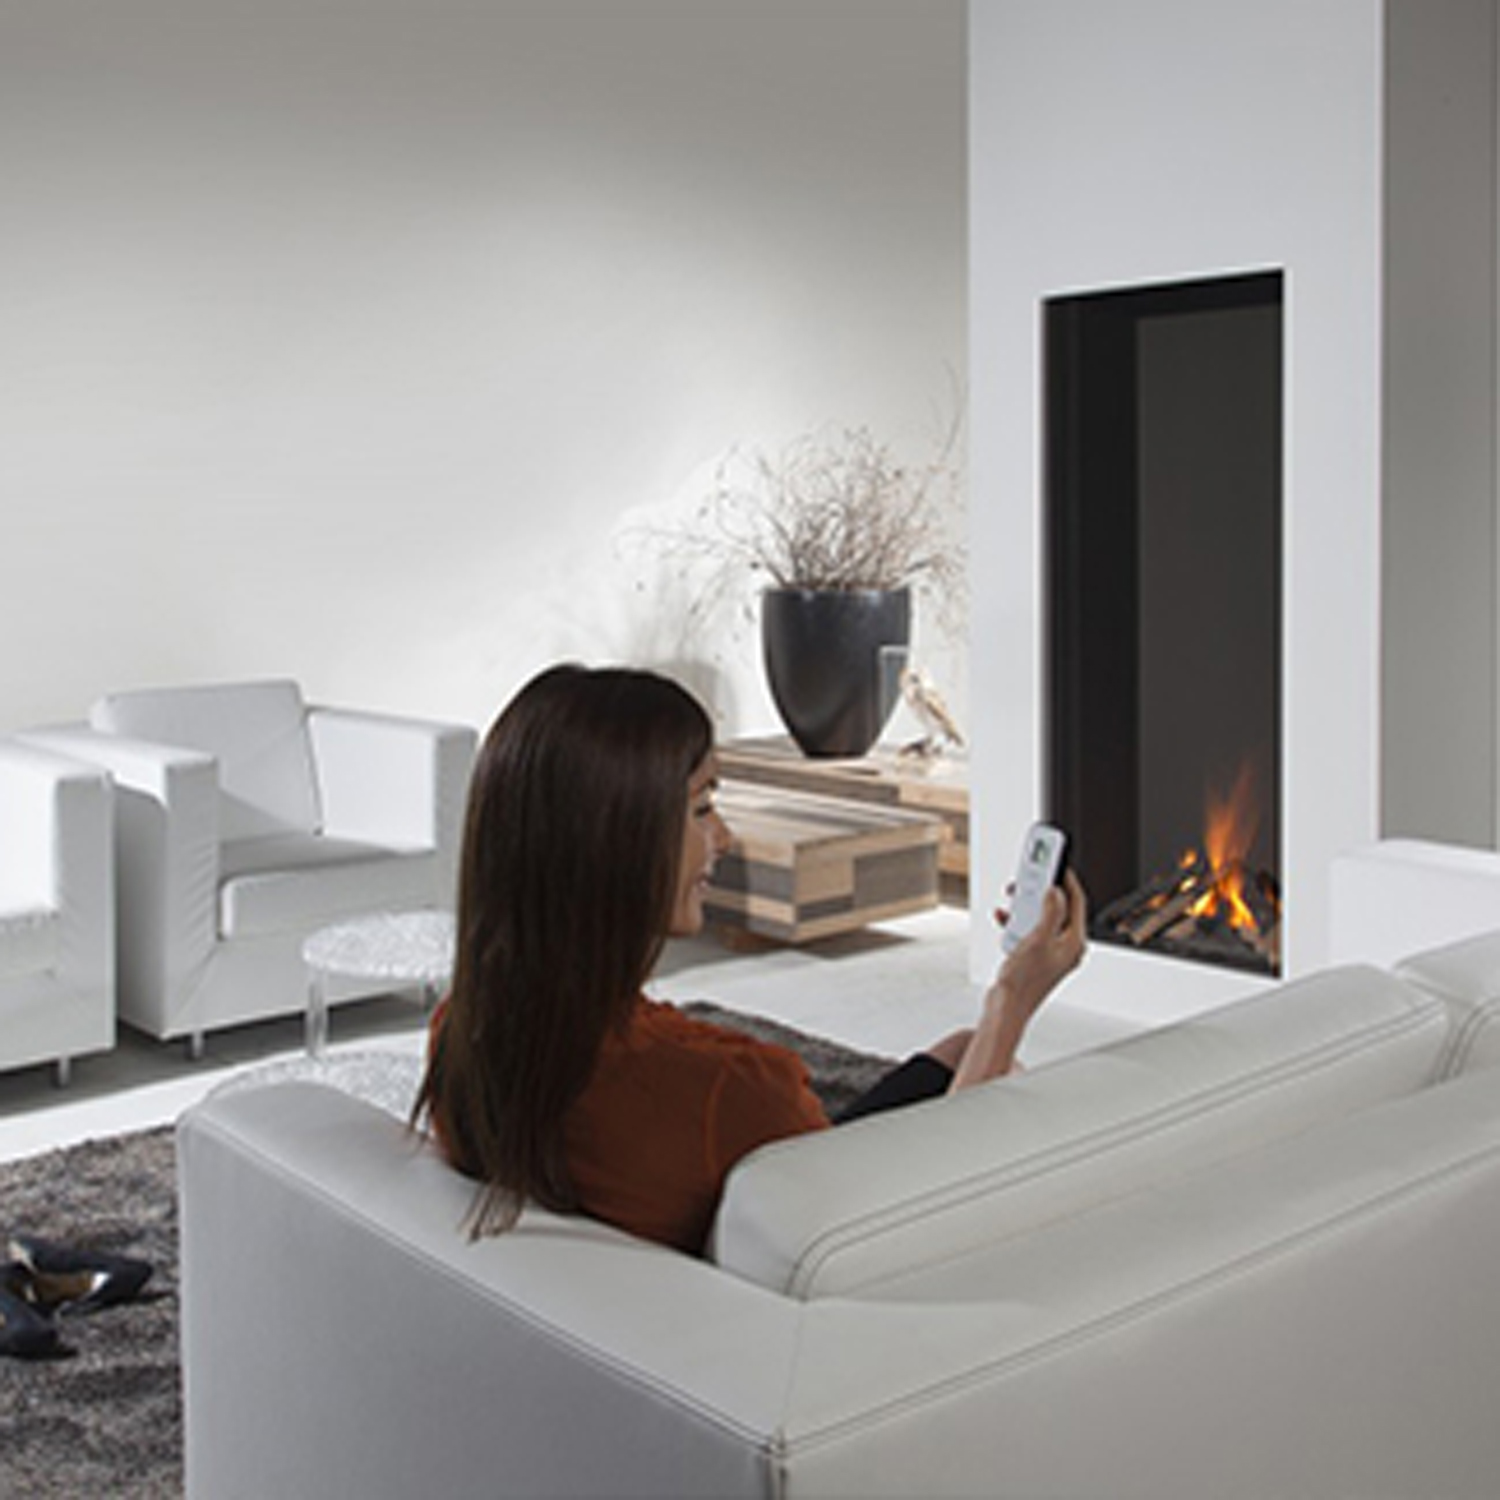 European Home Sky    View Full Specs   Whether you're looking for sleek materials, such as brushed stainless, or a unique multi-sided unit for that special room, European Home offers a complete line of direct vent and vent-free indoor and outdoor gas fireplaces.